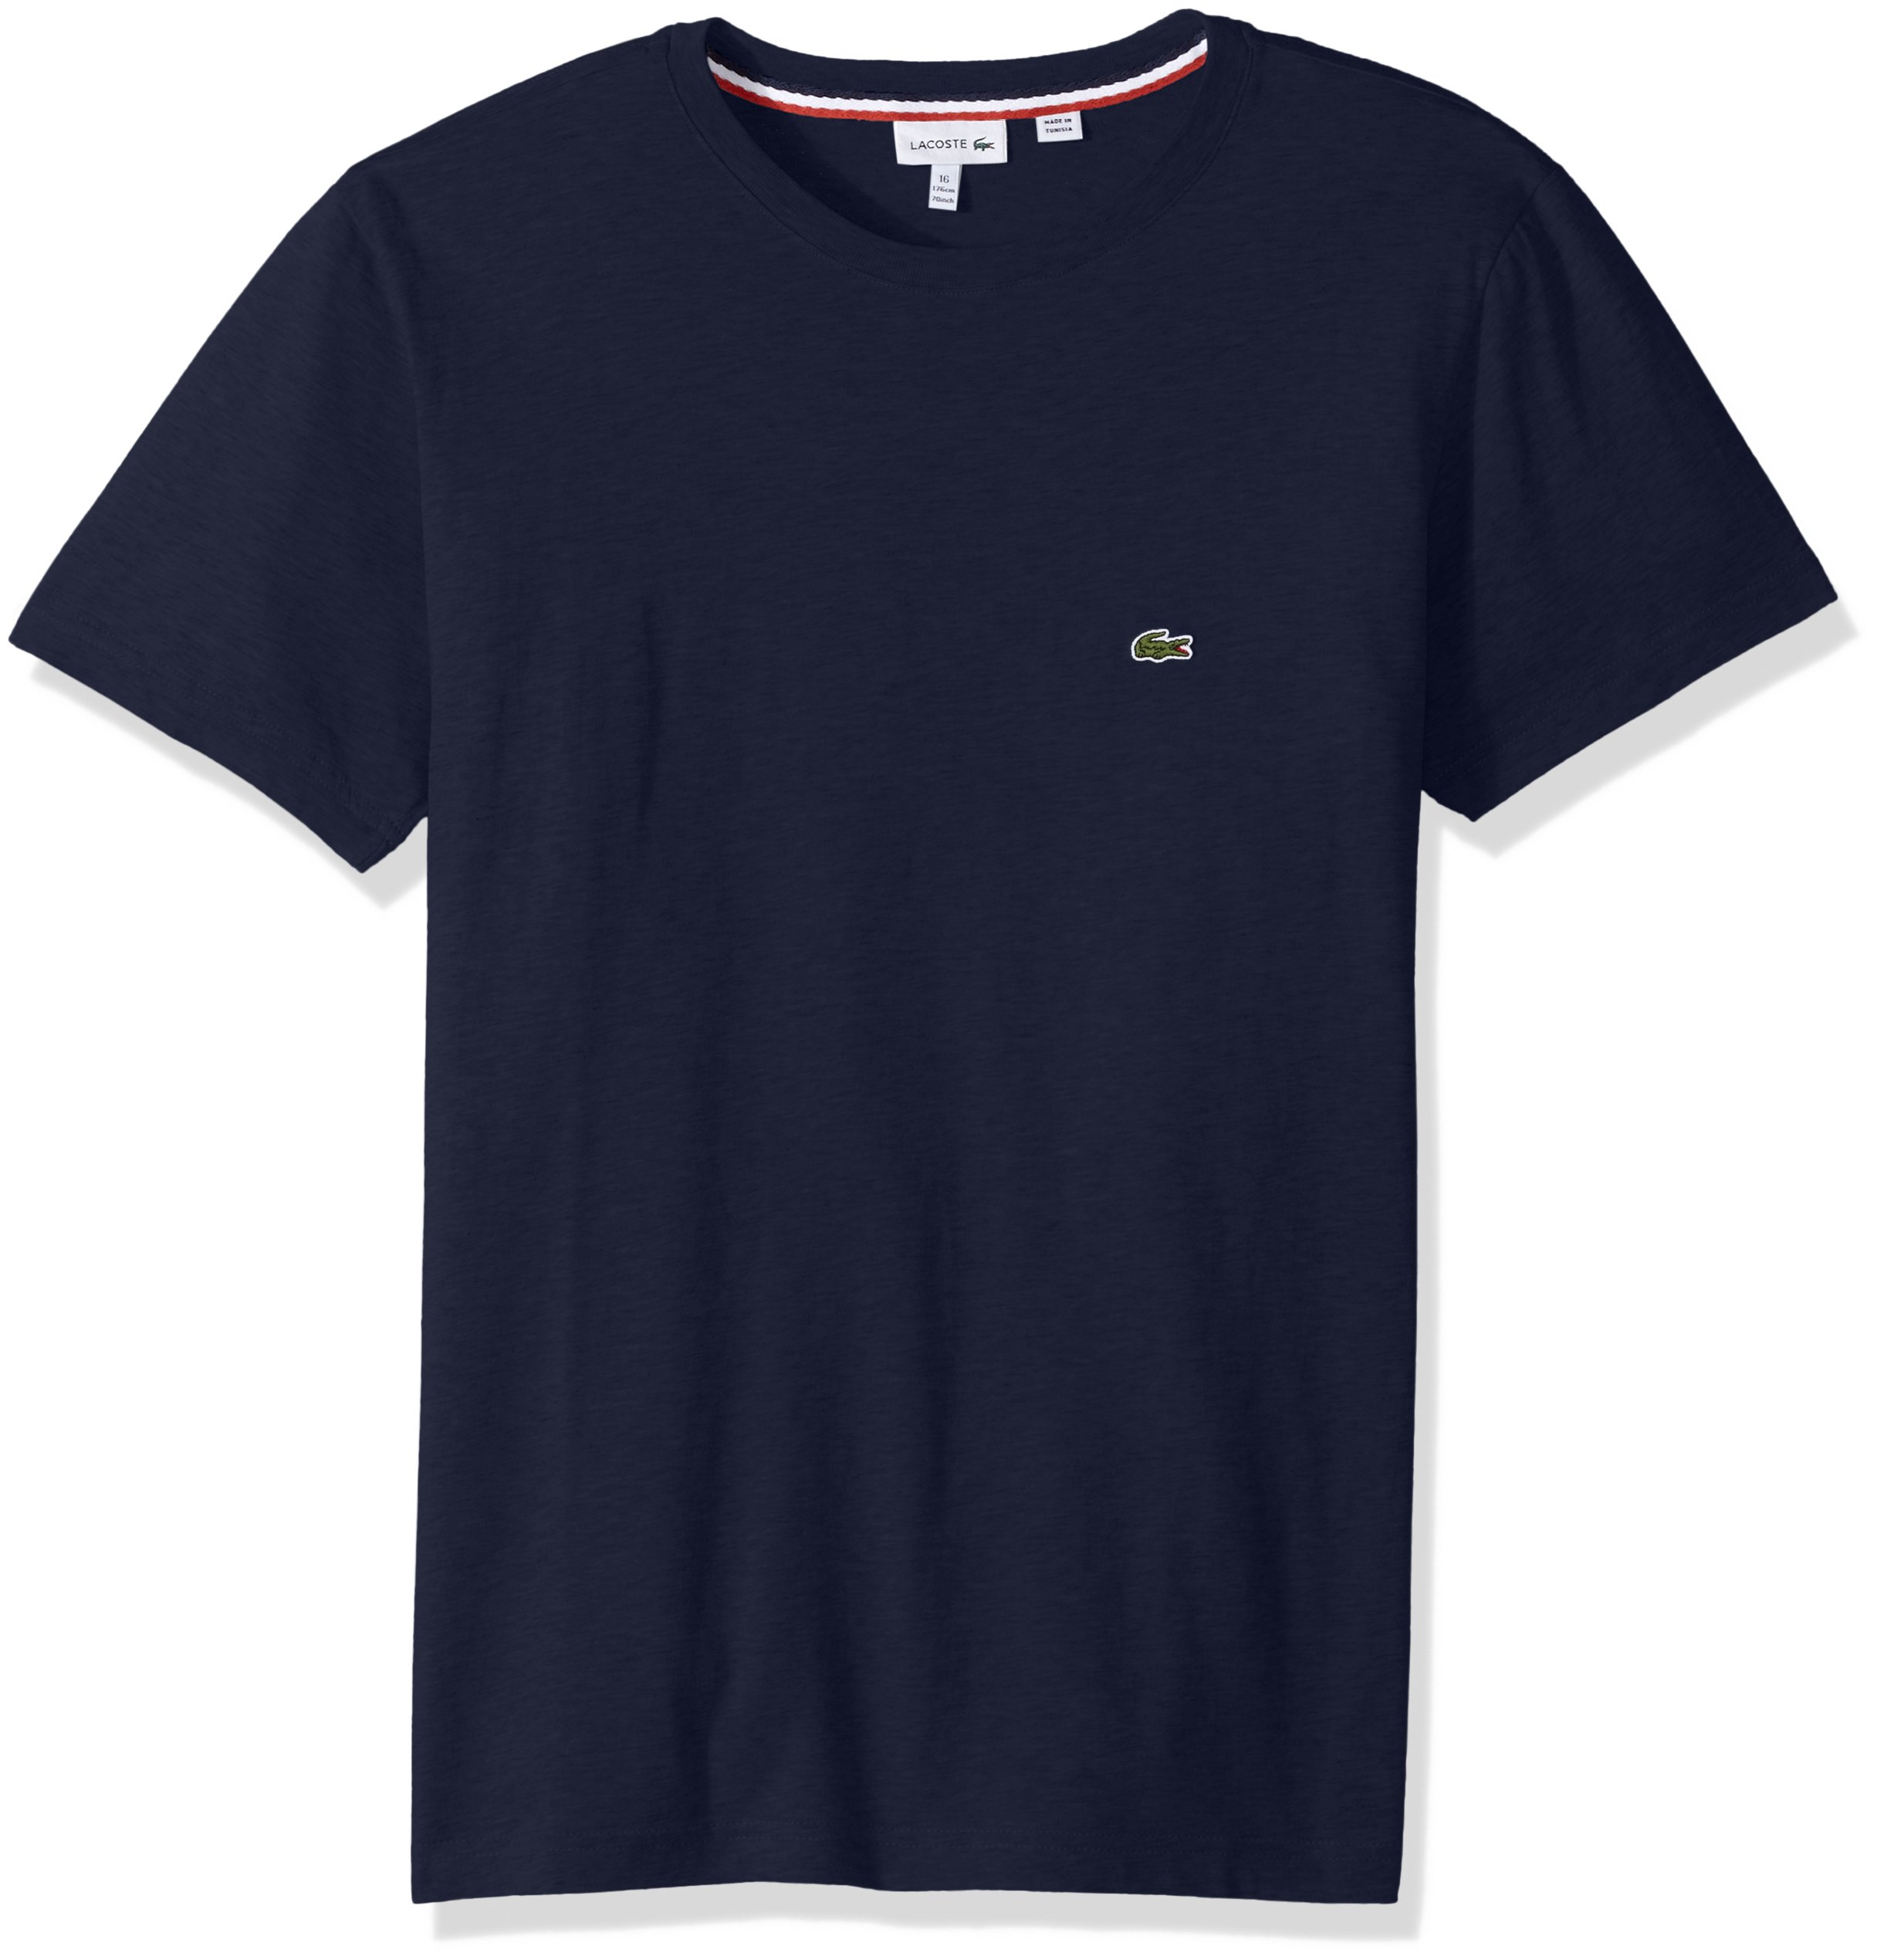 Lacoste Boys' Big Crew Neck Cotton Jersey T-Shirt, Navy Blue, 12Y